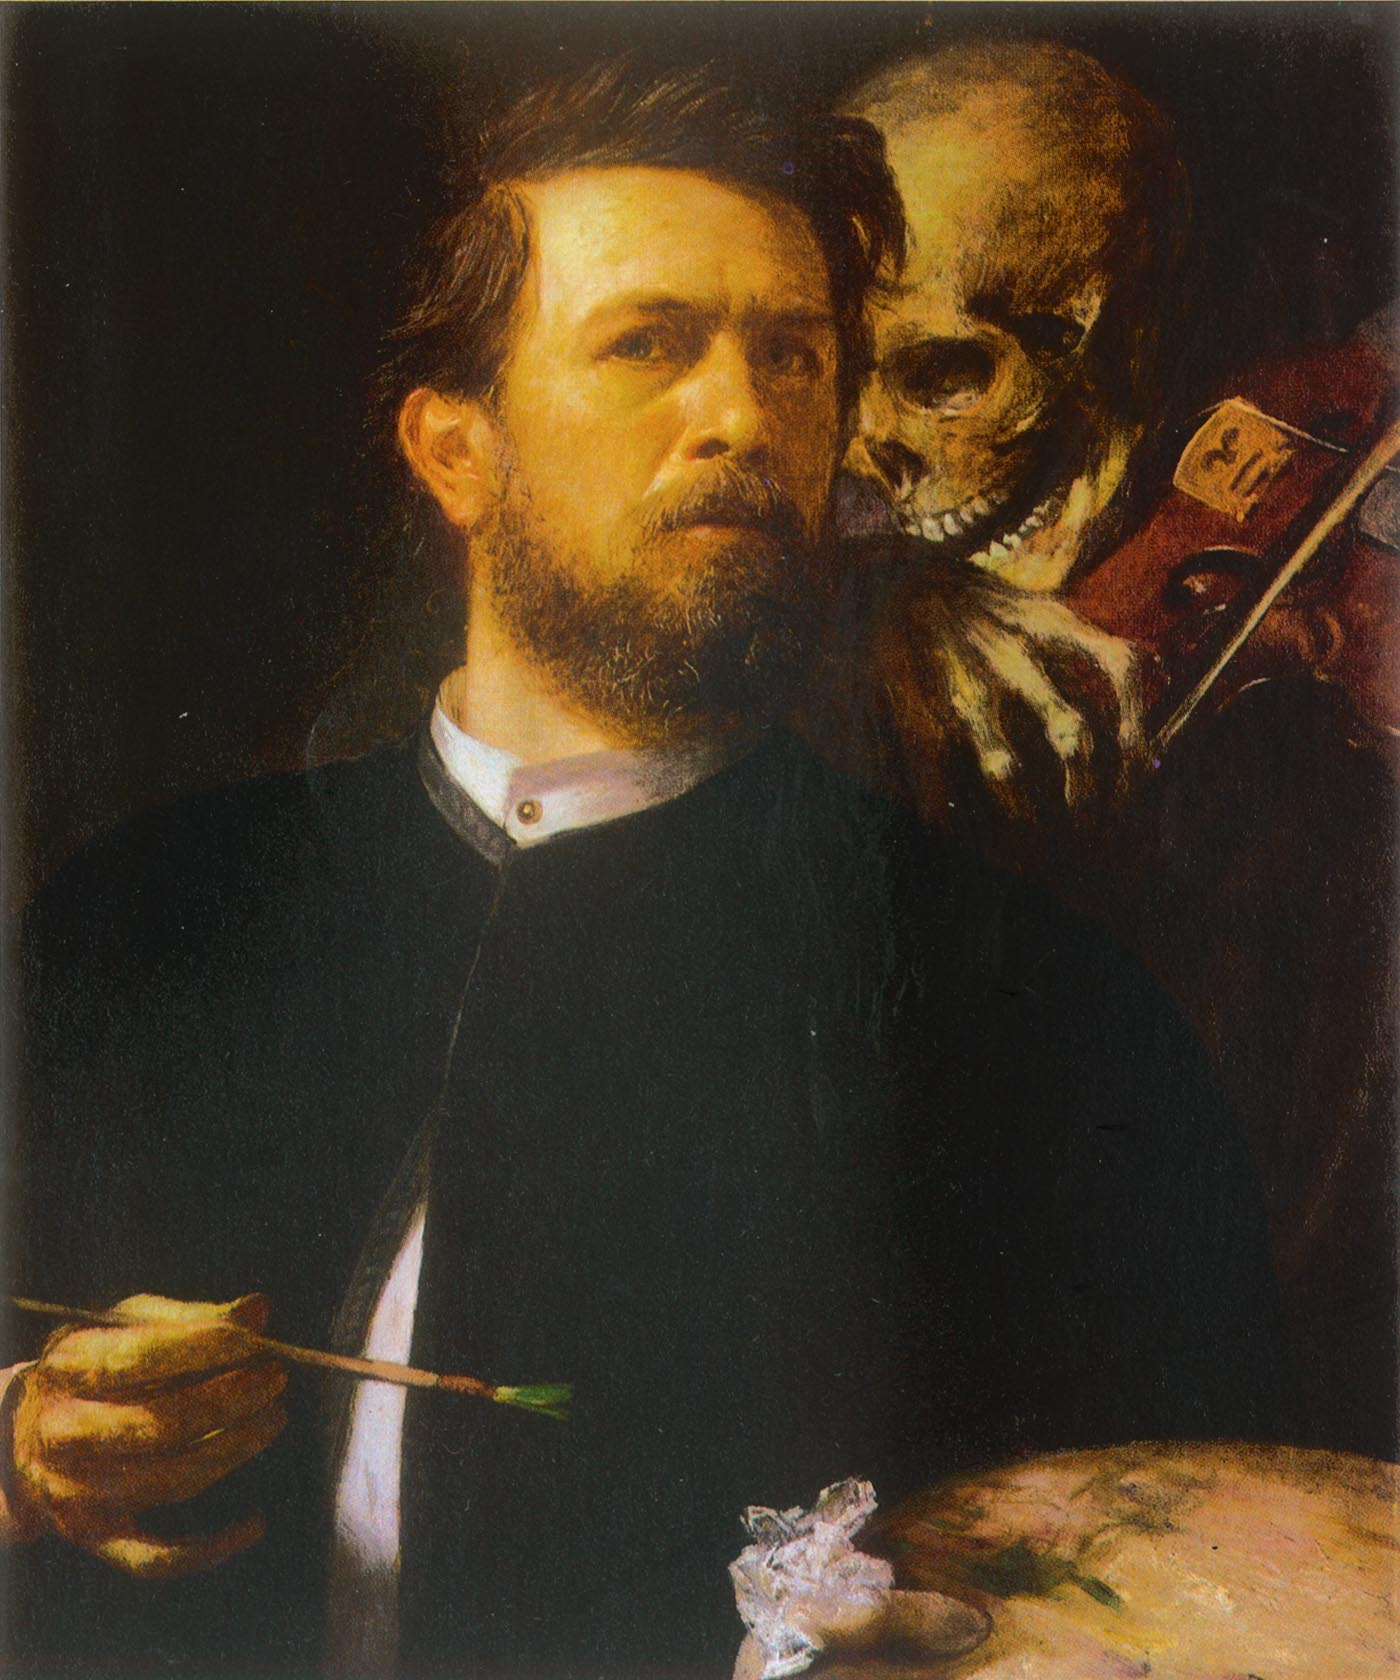 Arnold Böcklin, Self-Portrait with Death Playing the Fiddle, oil on canvas, 1872, Alte Nationalgalerie, Staatliche Museen zu Berlin.